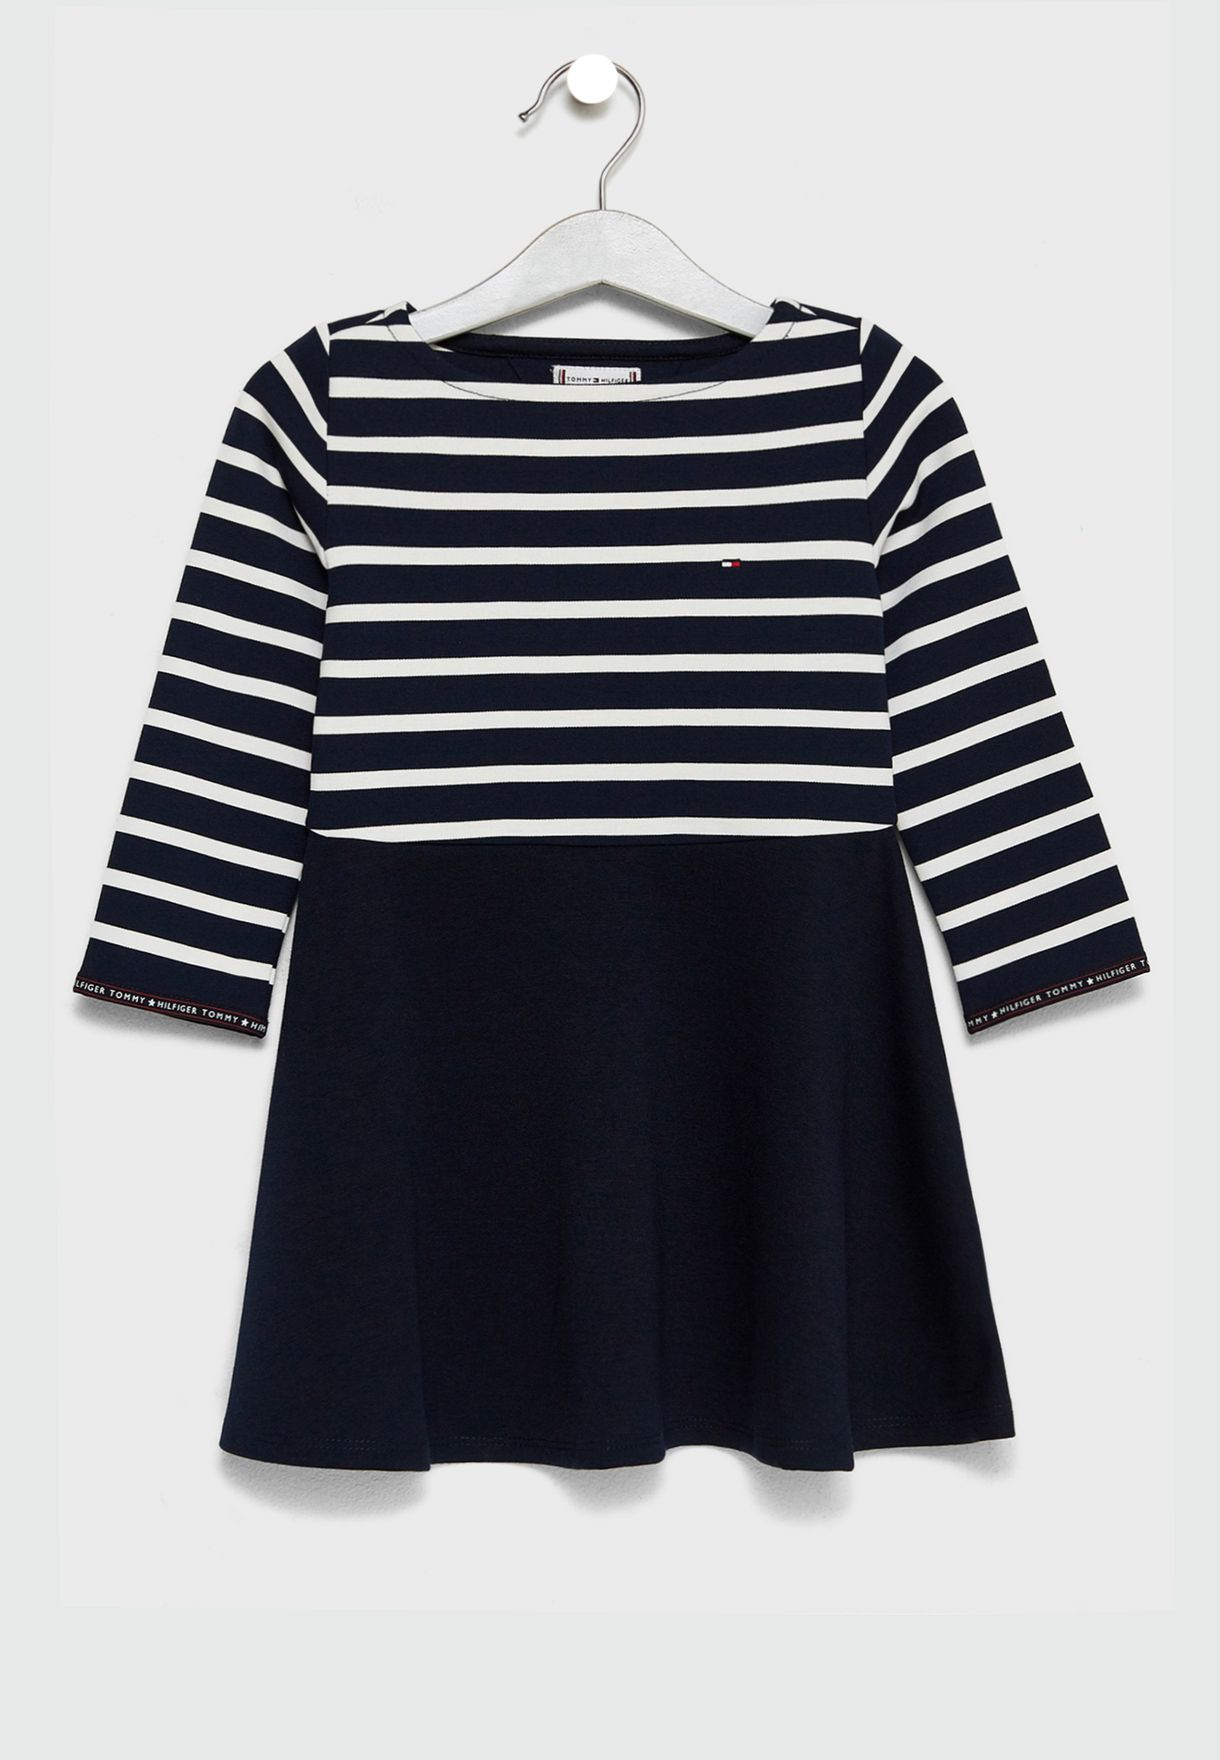 d8cccc9d6f7d Shop Tommy Hilfiger navy Little Striped Dress KG0KG03779 for Kids in ...